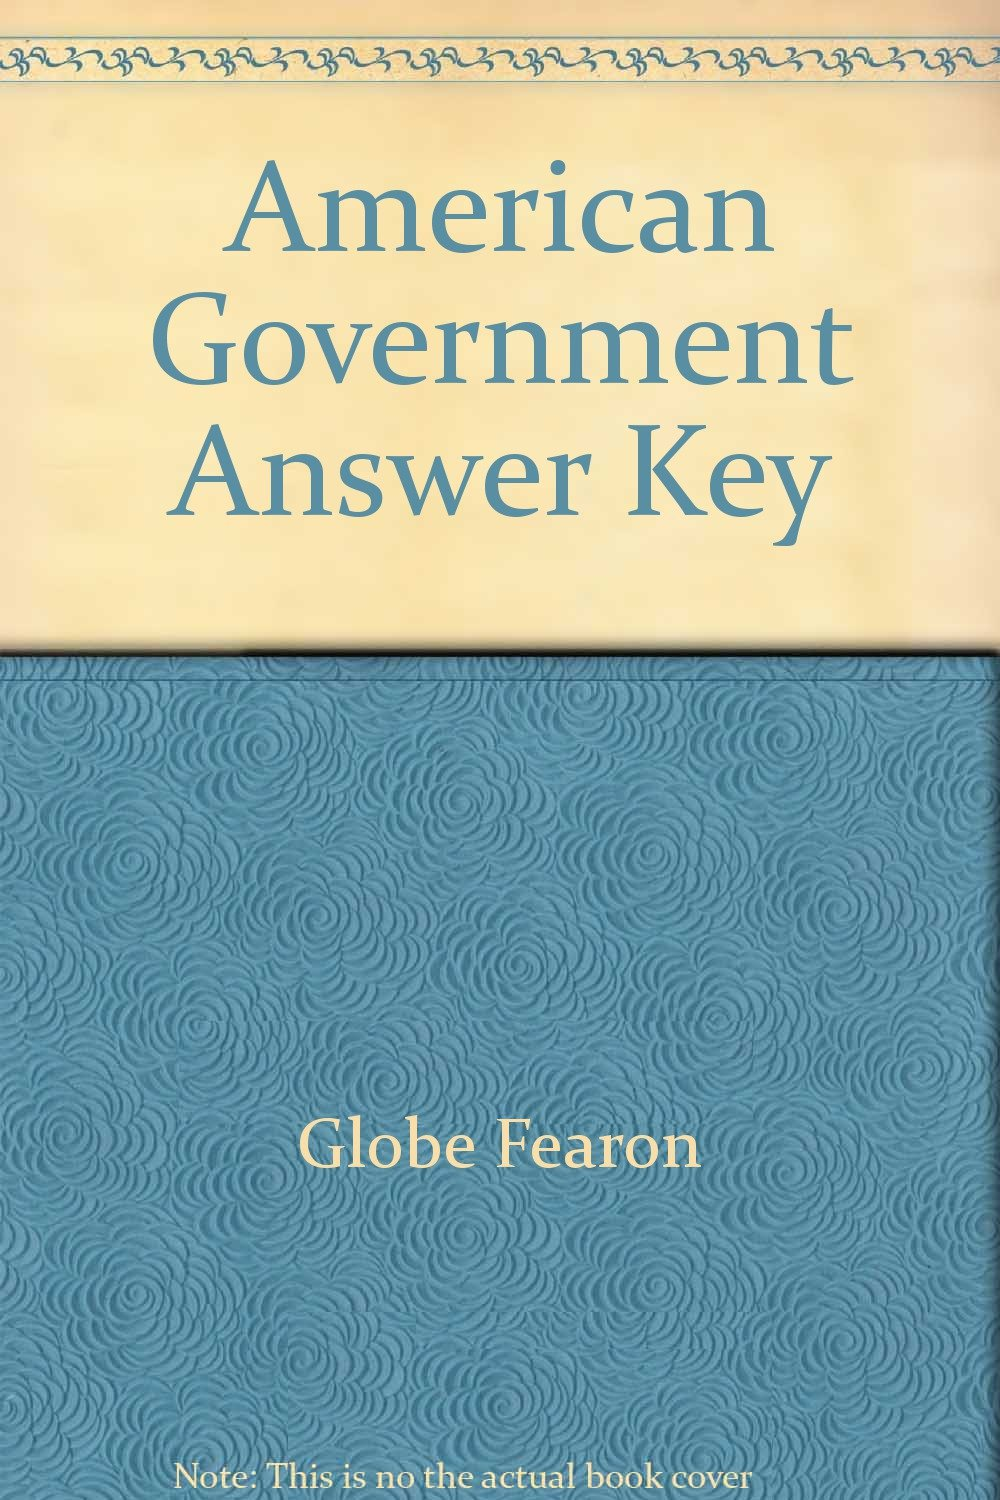 American government answer key 9780835933841 amazon books fandeluxe Choice Image